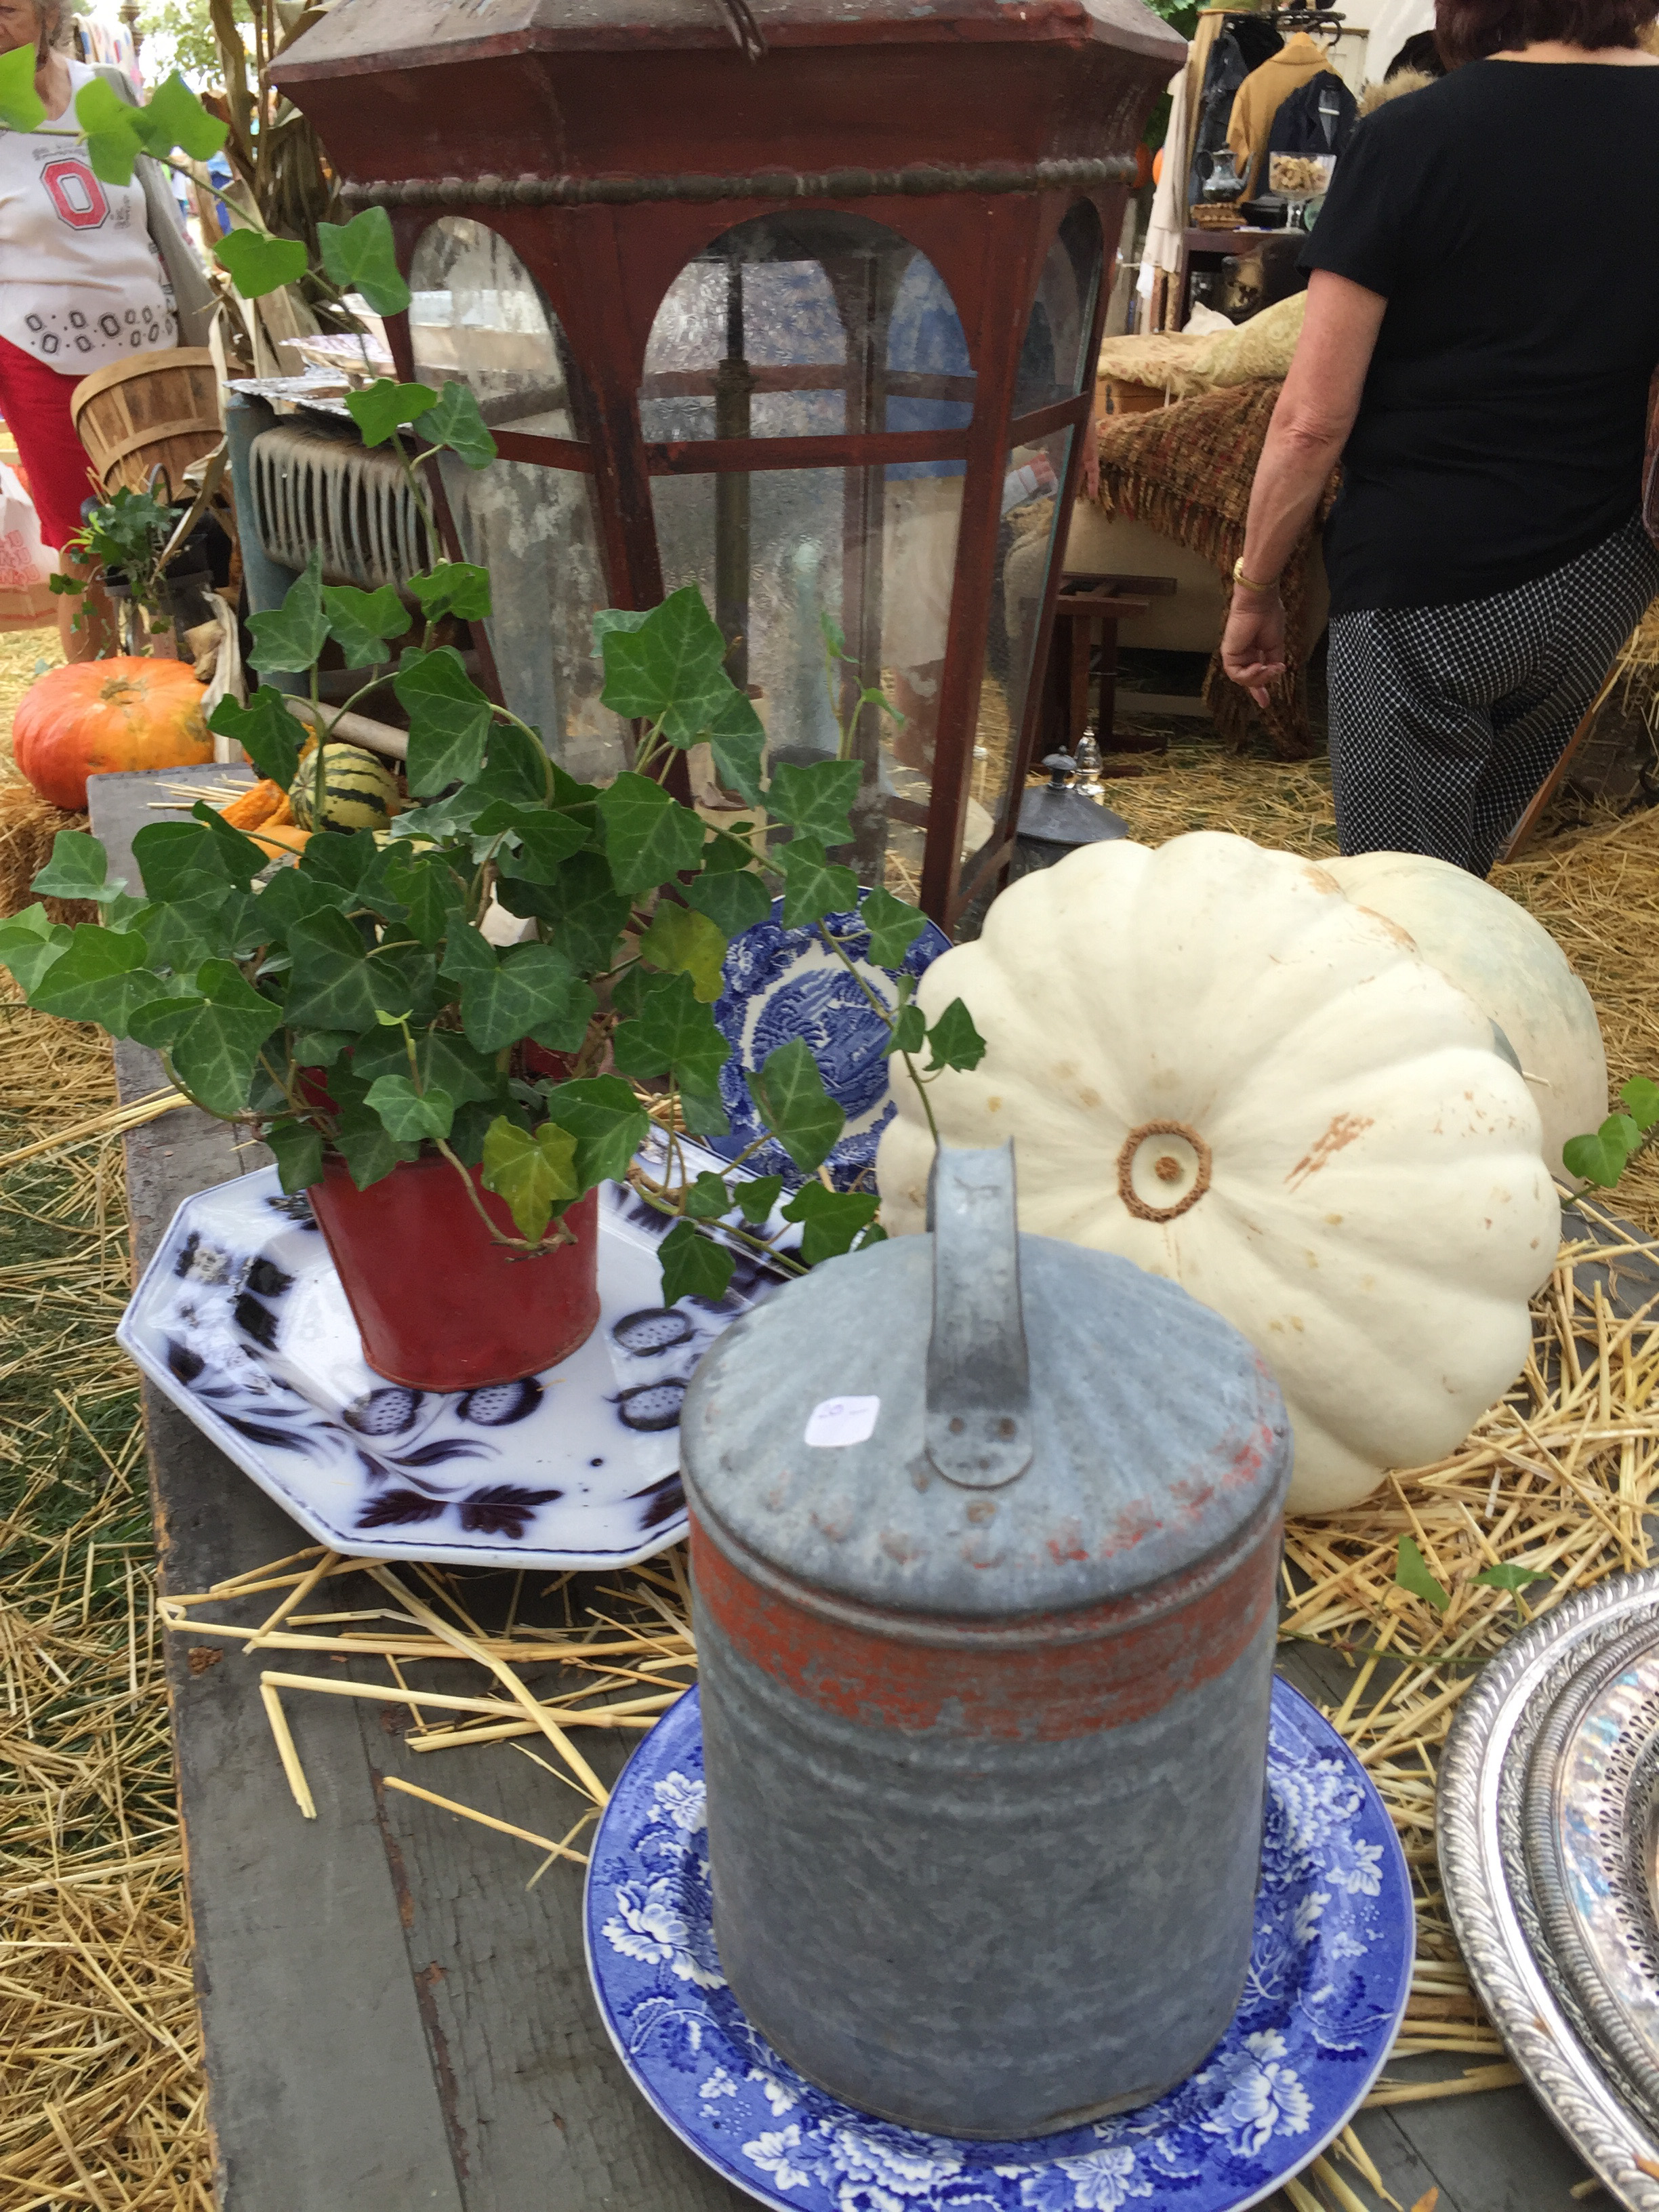 original_caughey-melissacaughey-country-living-fair-ohio-2016-6-8